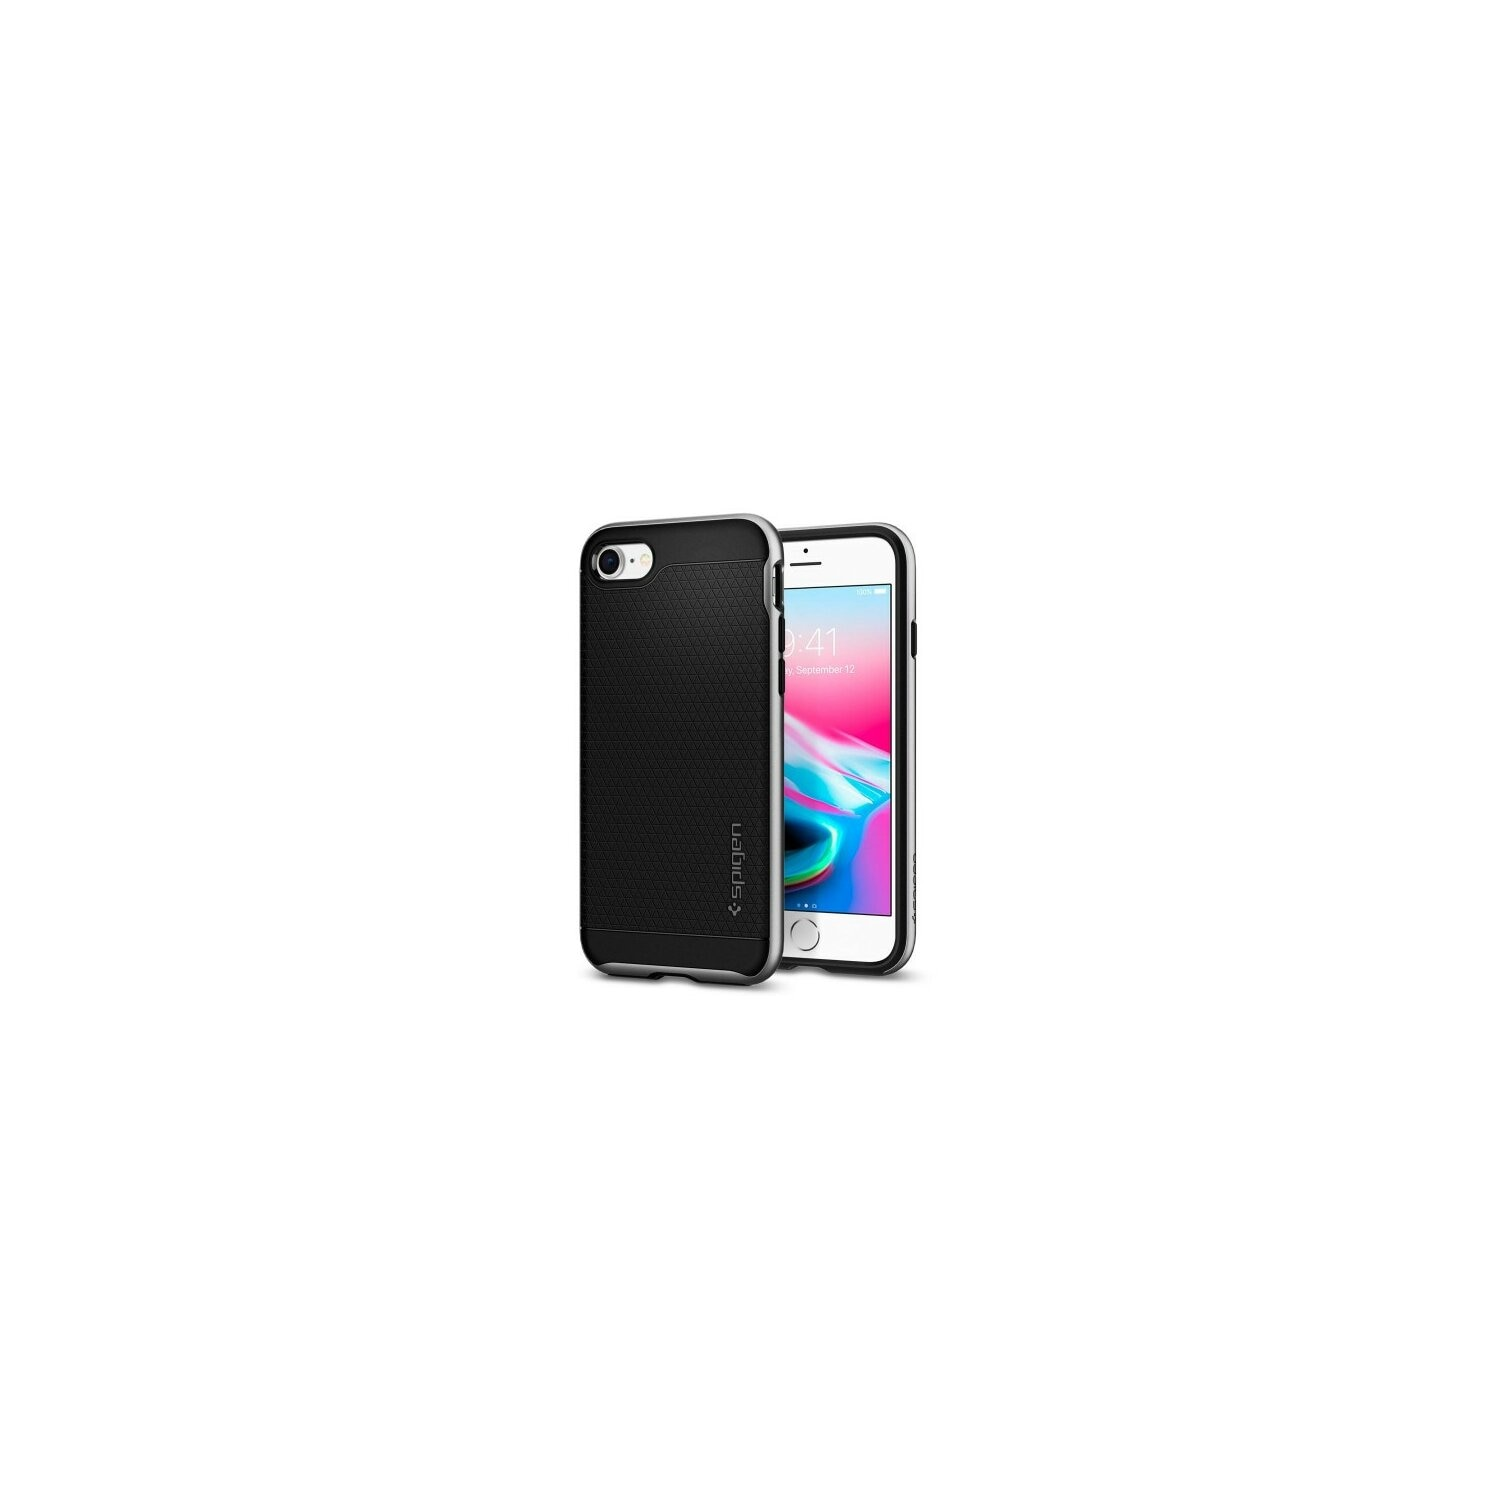 Etui SPIGEN Neo Hybrid 2 do iPhone 7/8 Srebrny